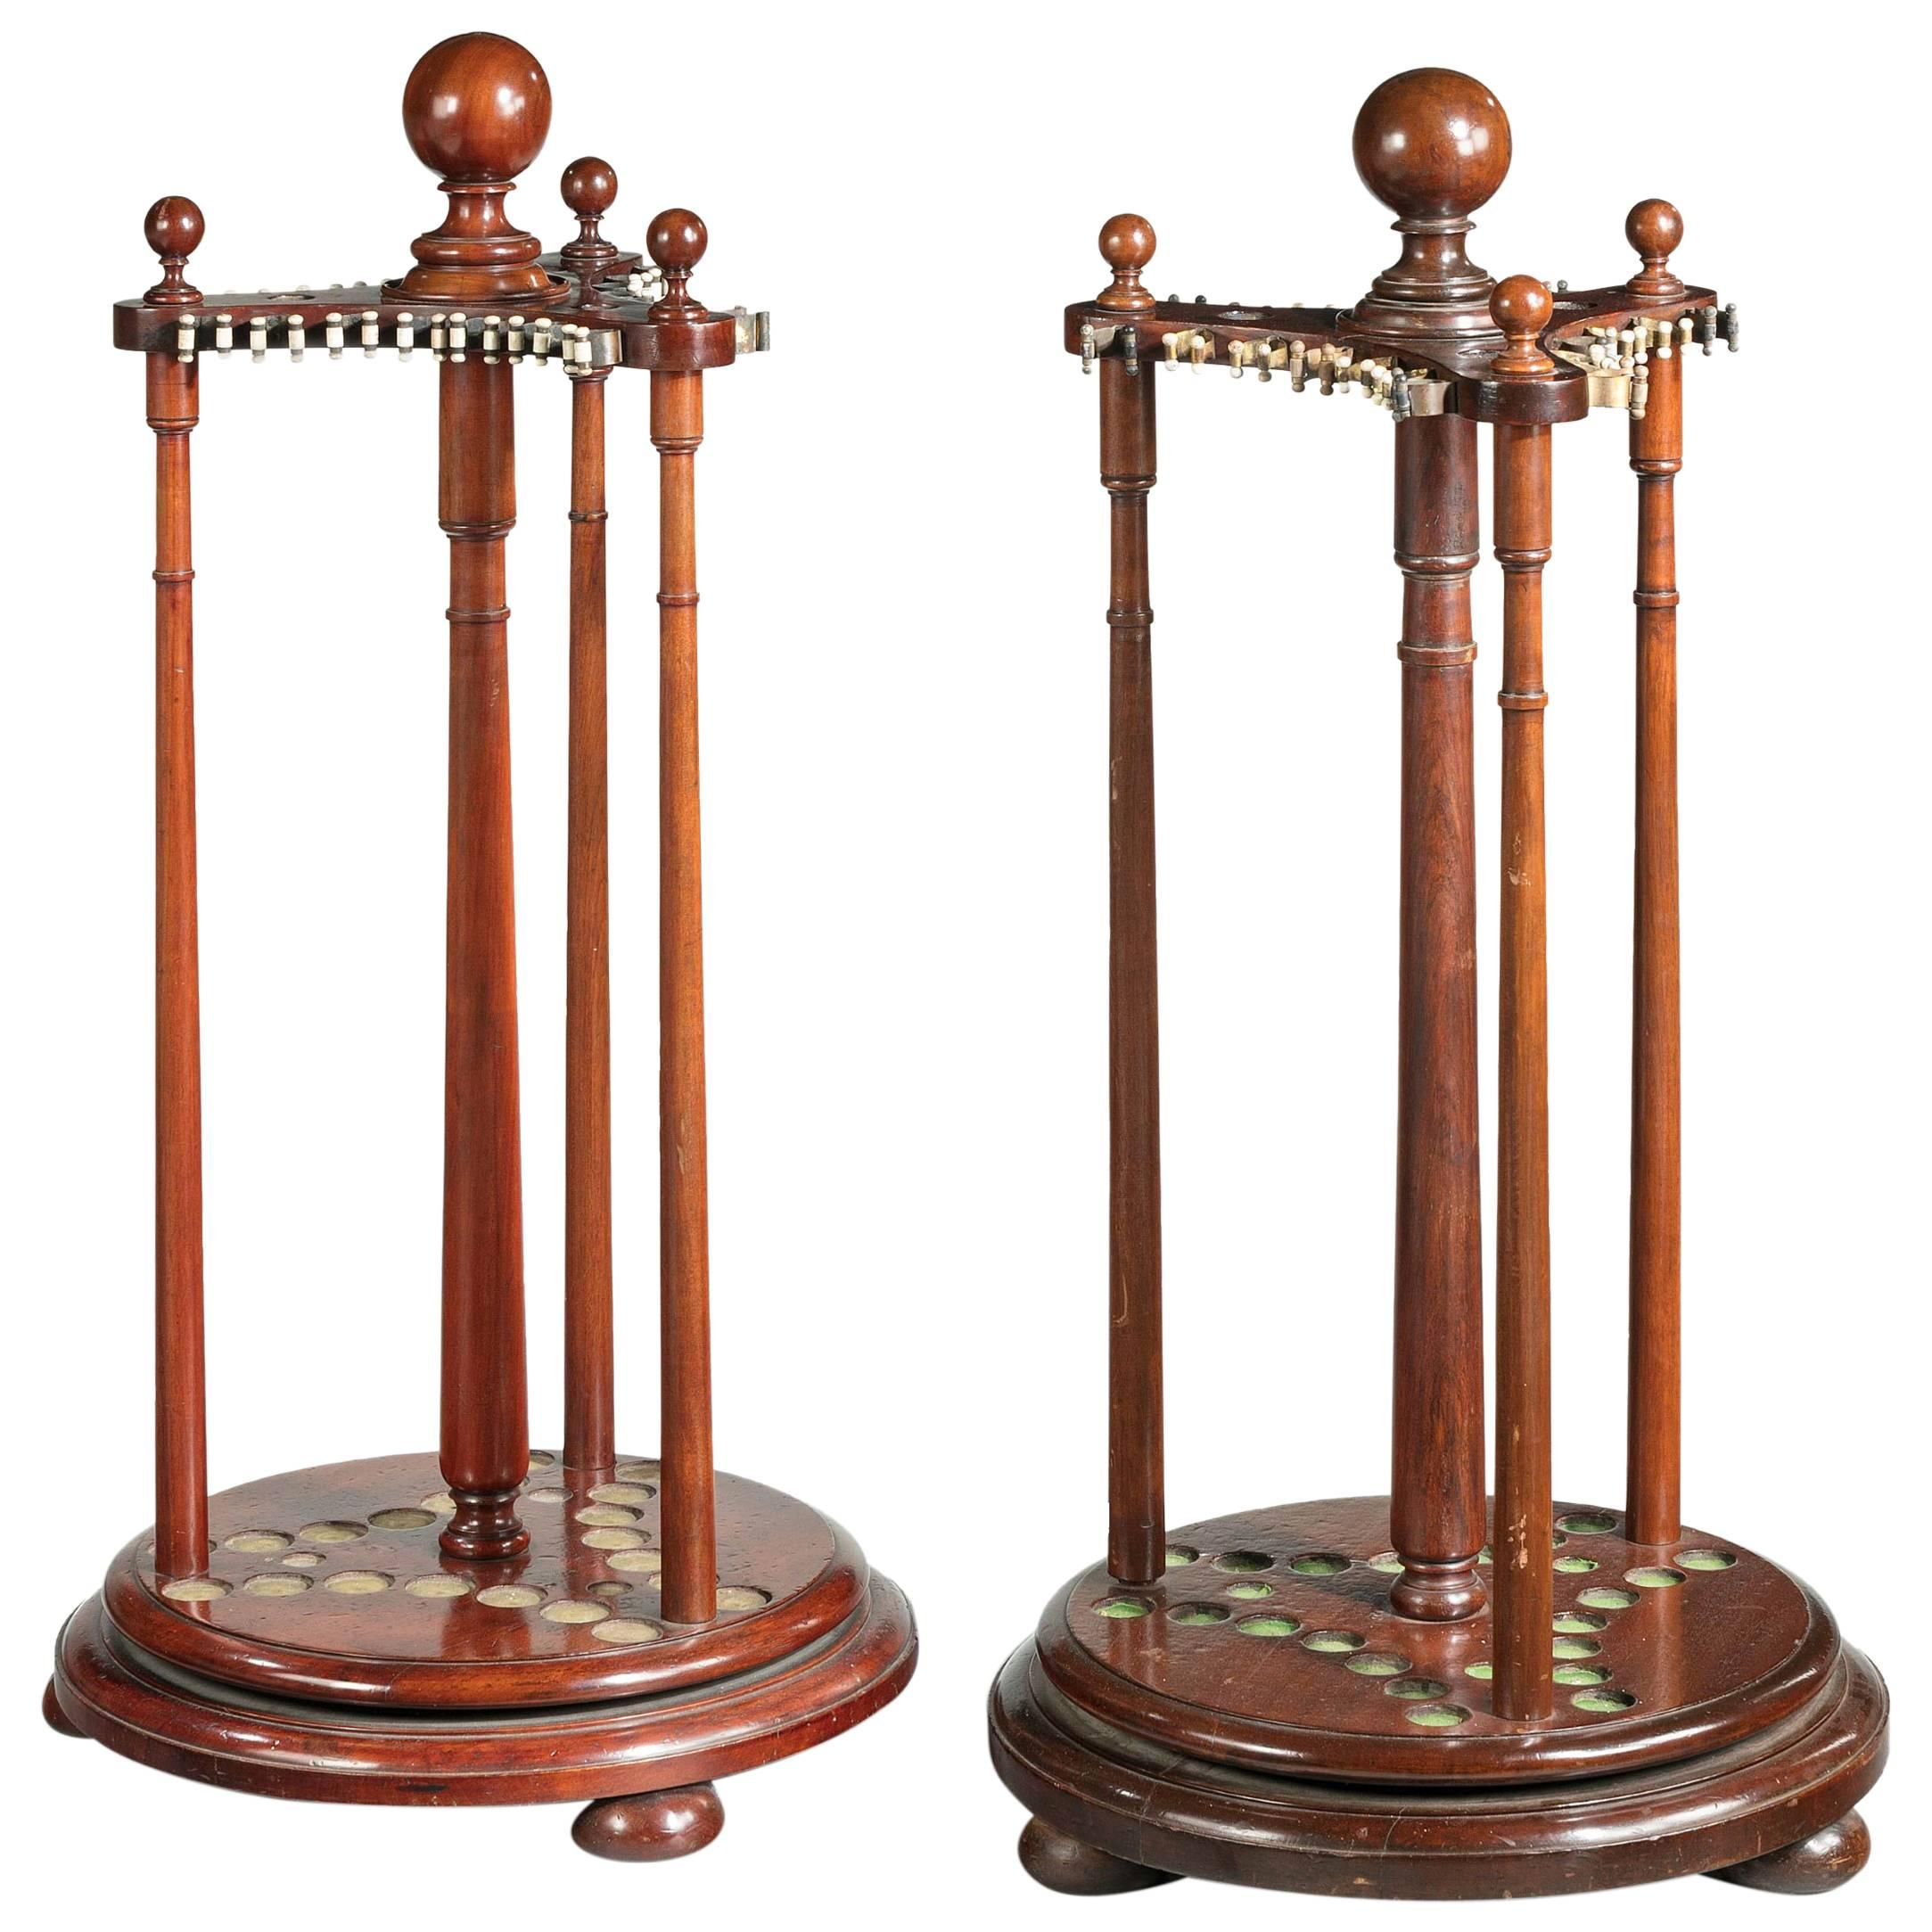 Pair of 19th century mahogany snooker or pool cue holders